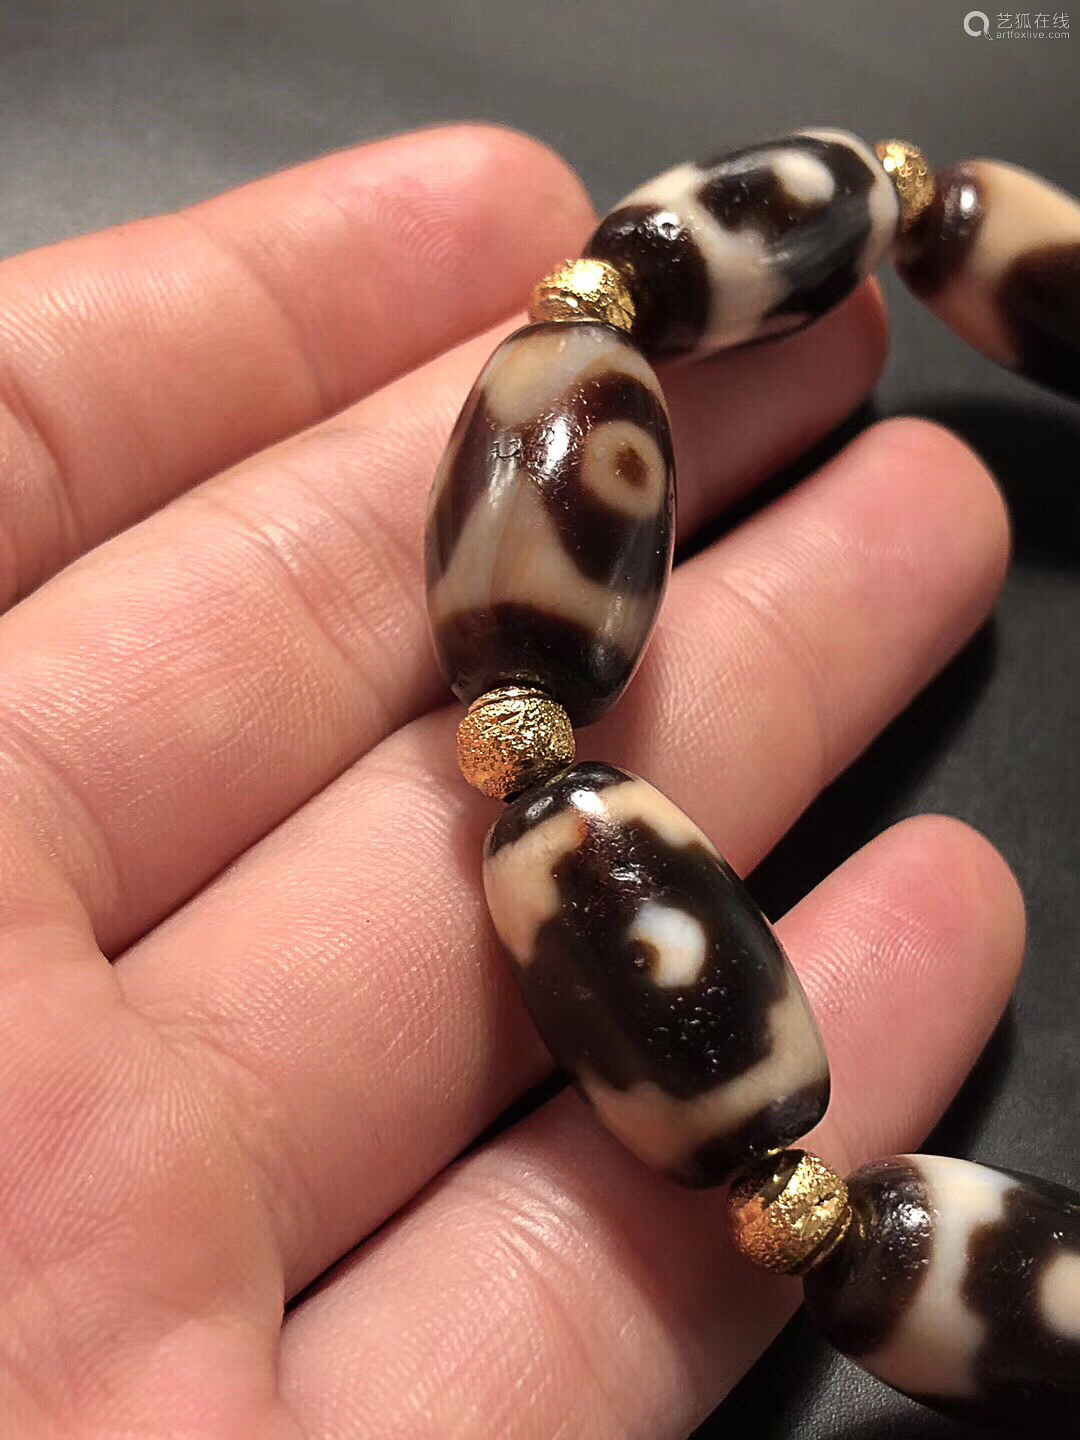 A HIGHLY OIL DZI BEAD BRACELET